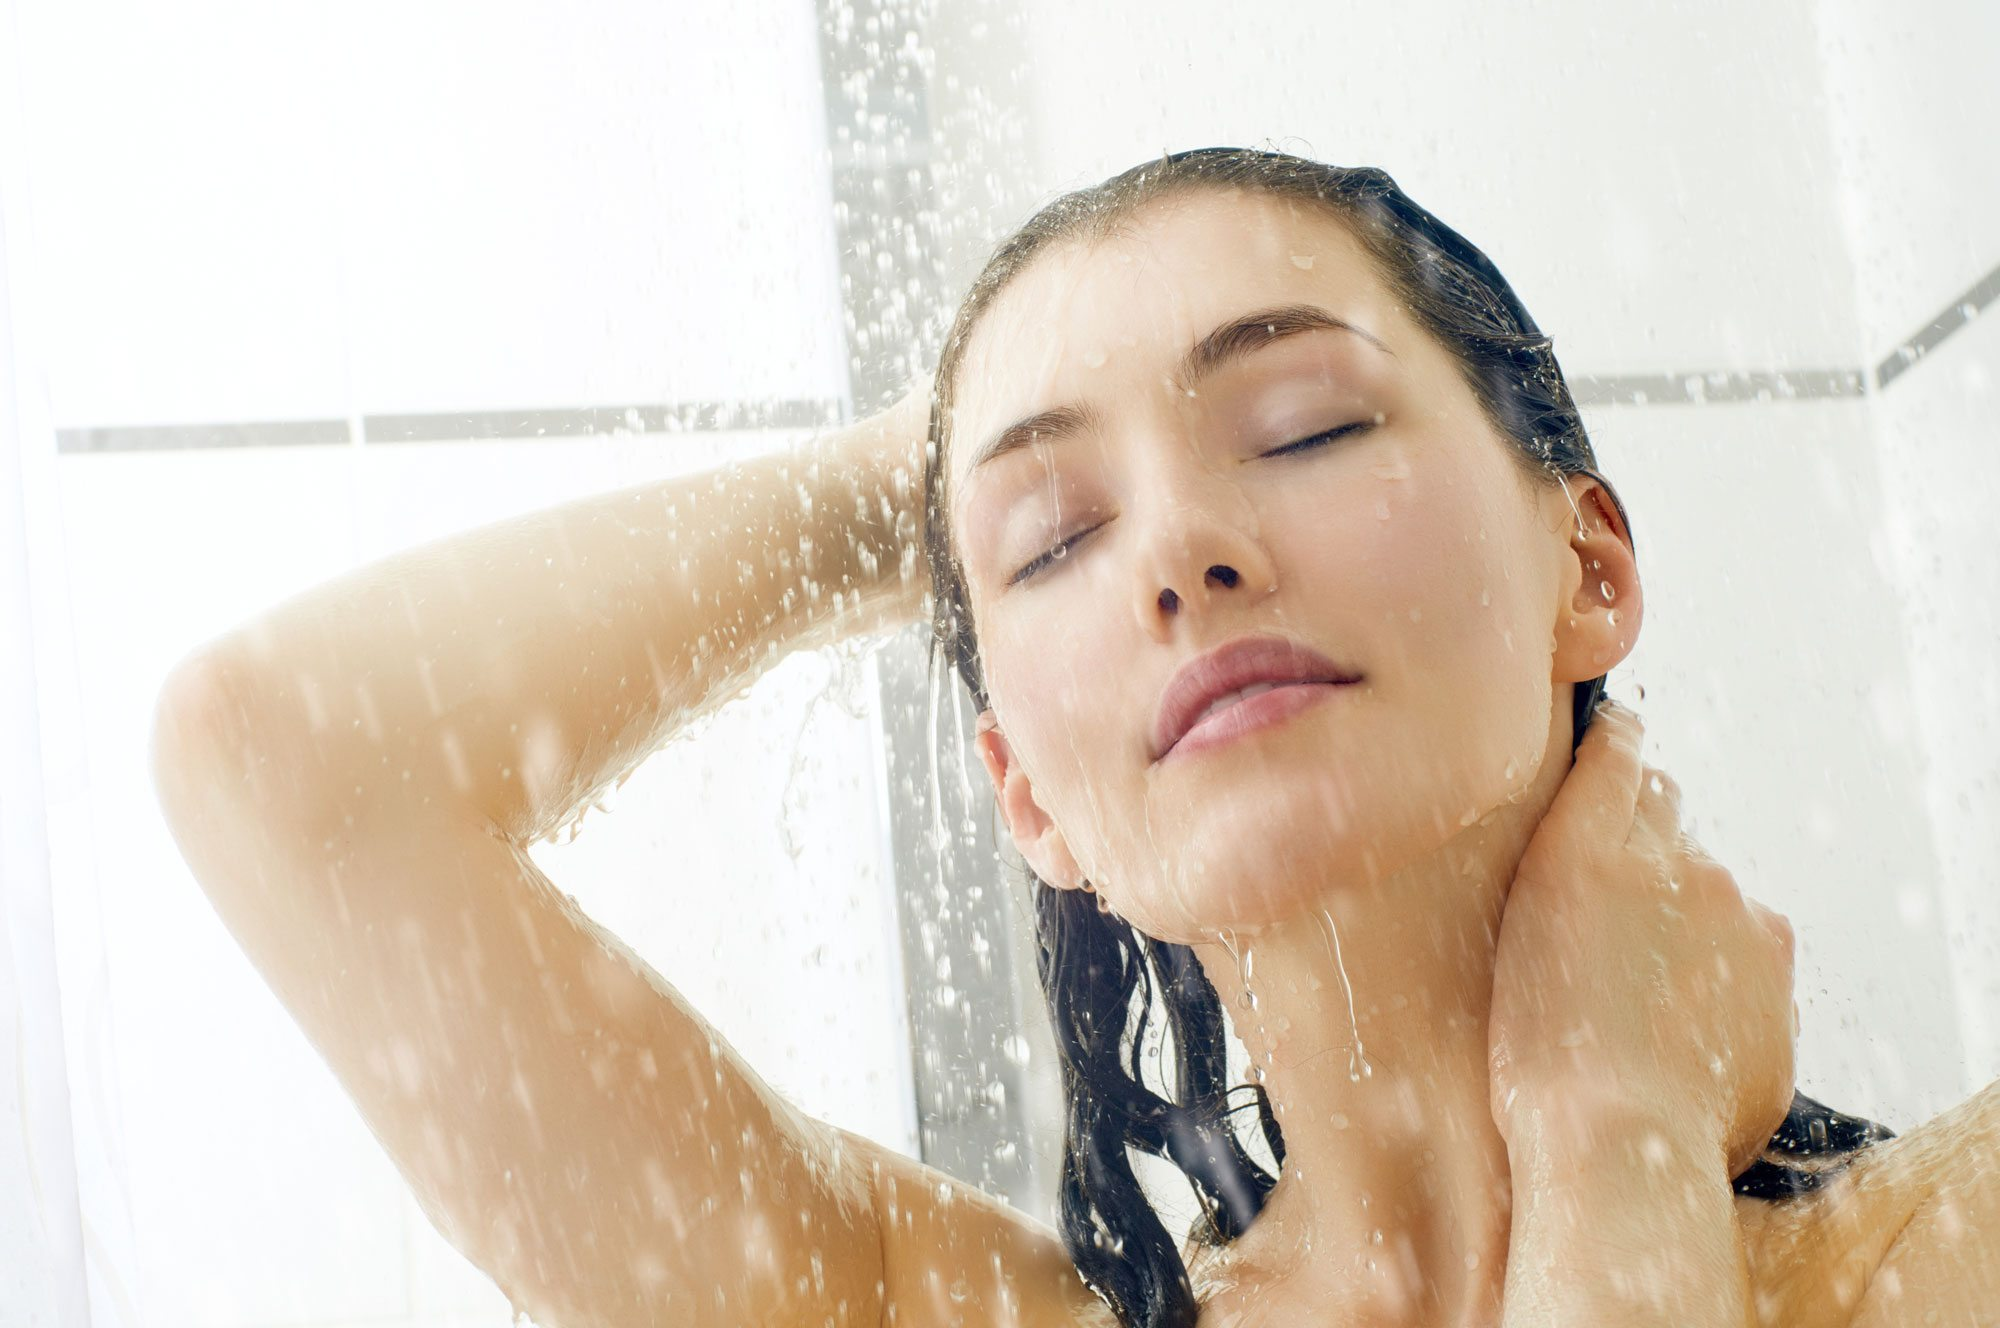 avoid hot showers & baths